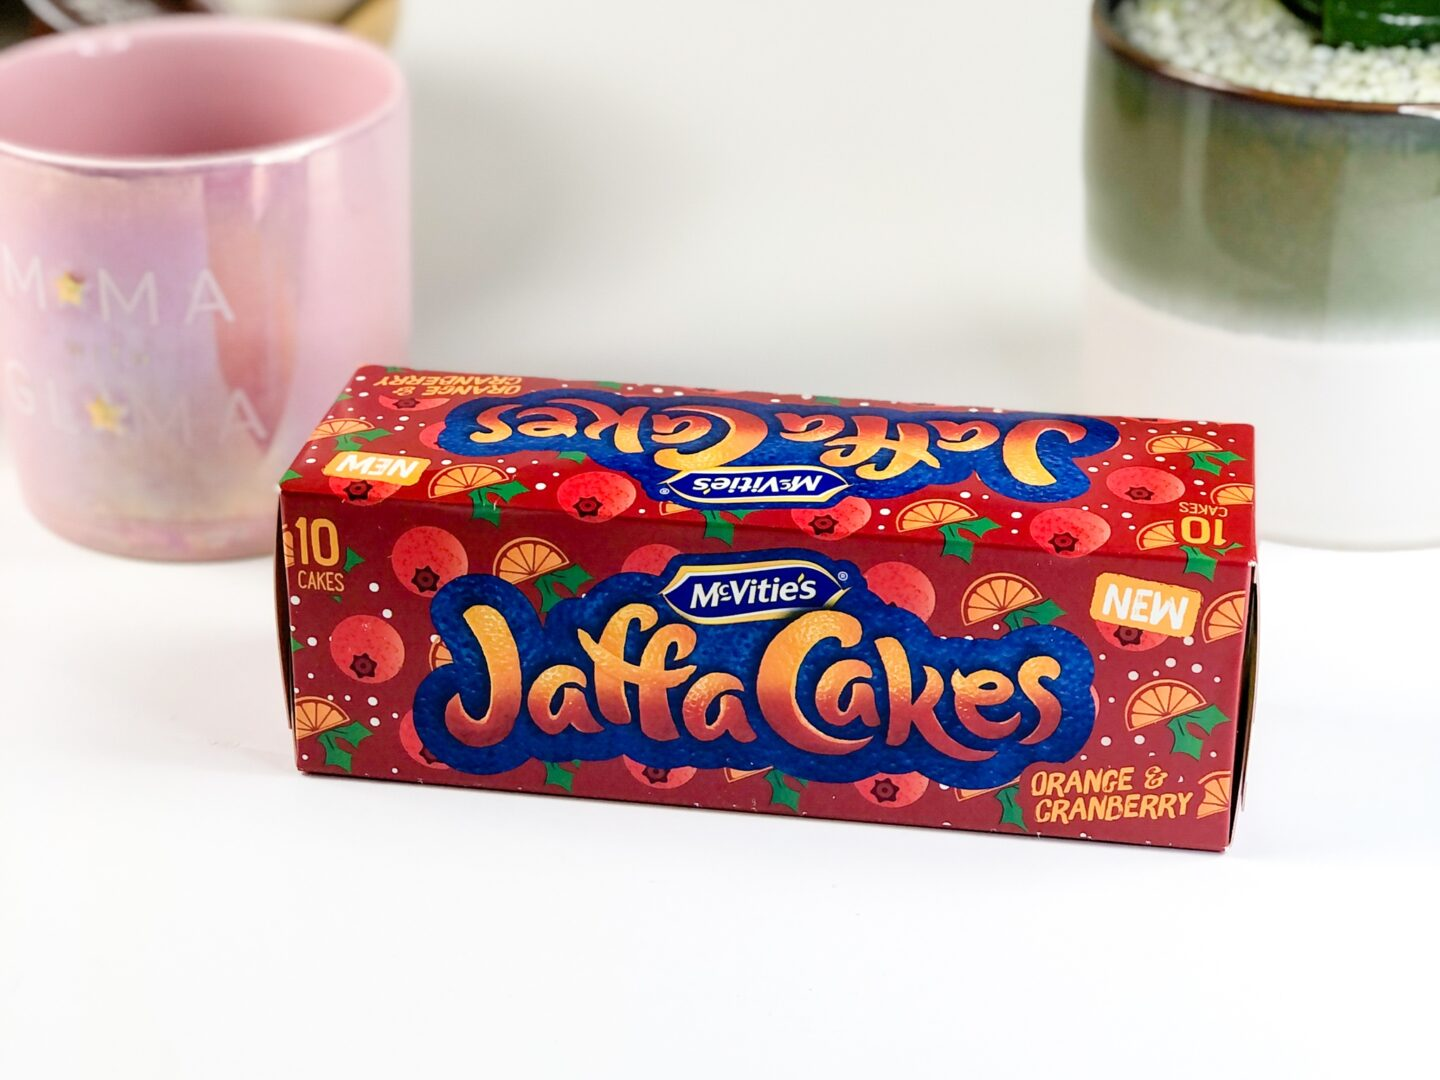 Jaffa Cakes Orange and Cranberry - Degusta Box November 2020